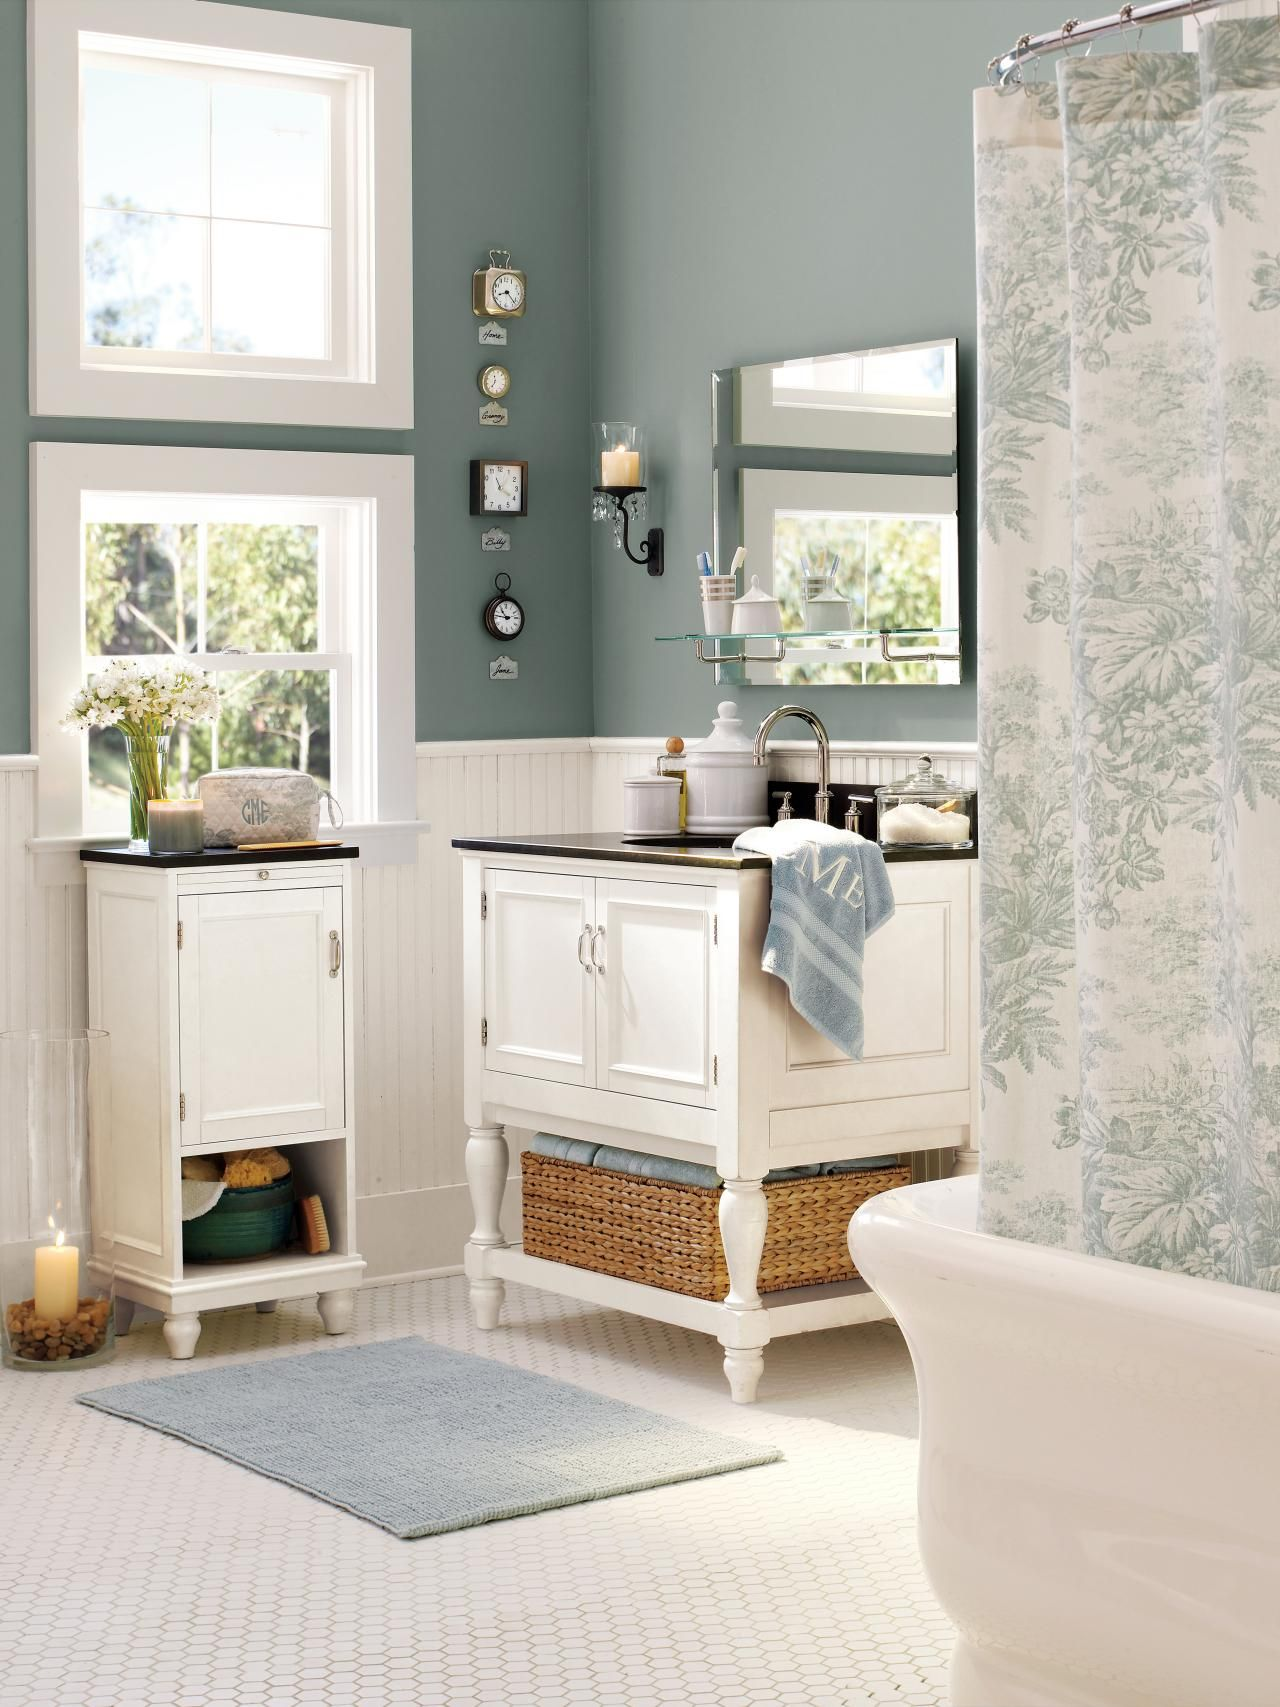 This Bathroom Is Full Of Accessories From The Retailer Pottery Barn  Including A Shower Curtain,